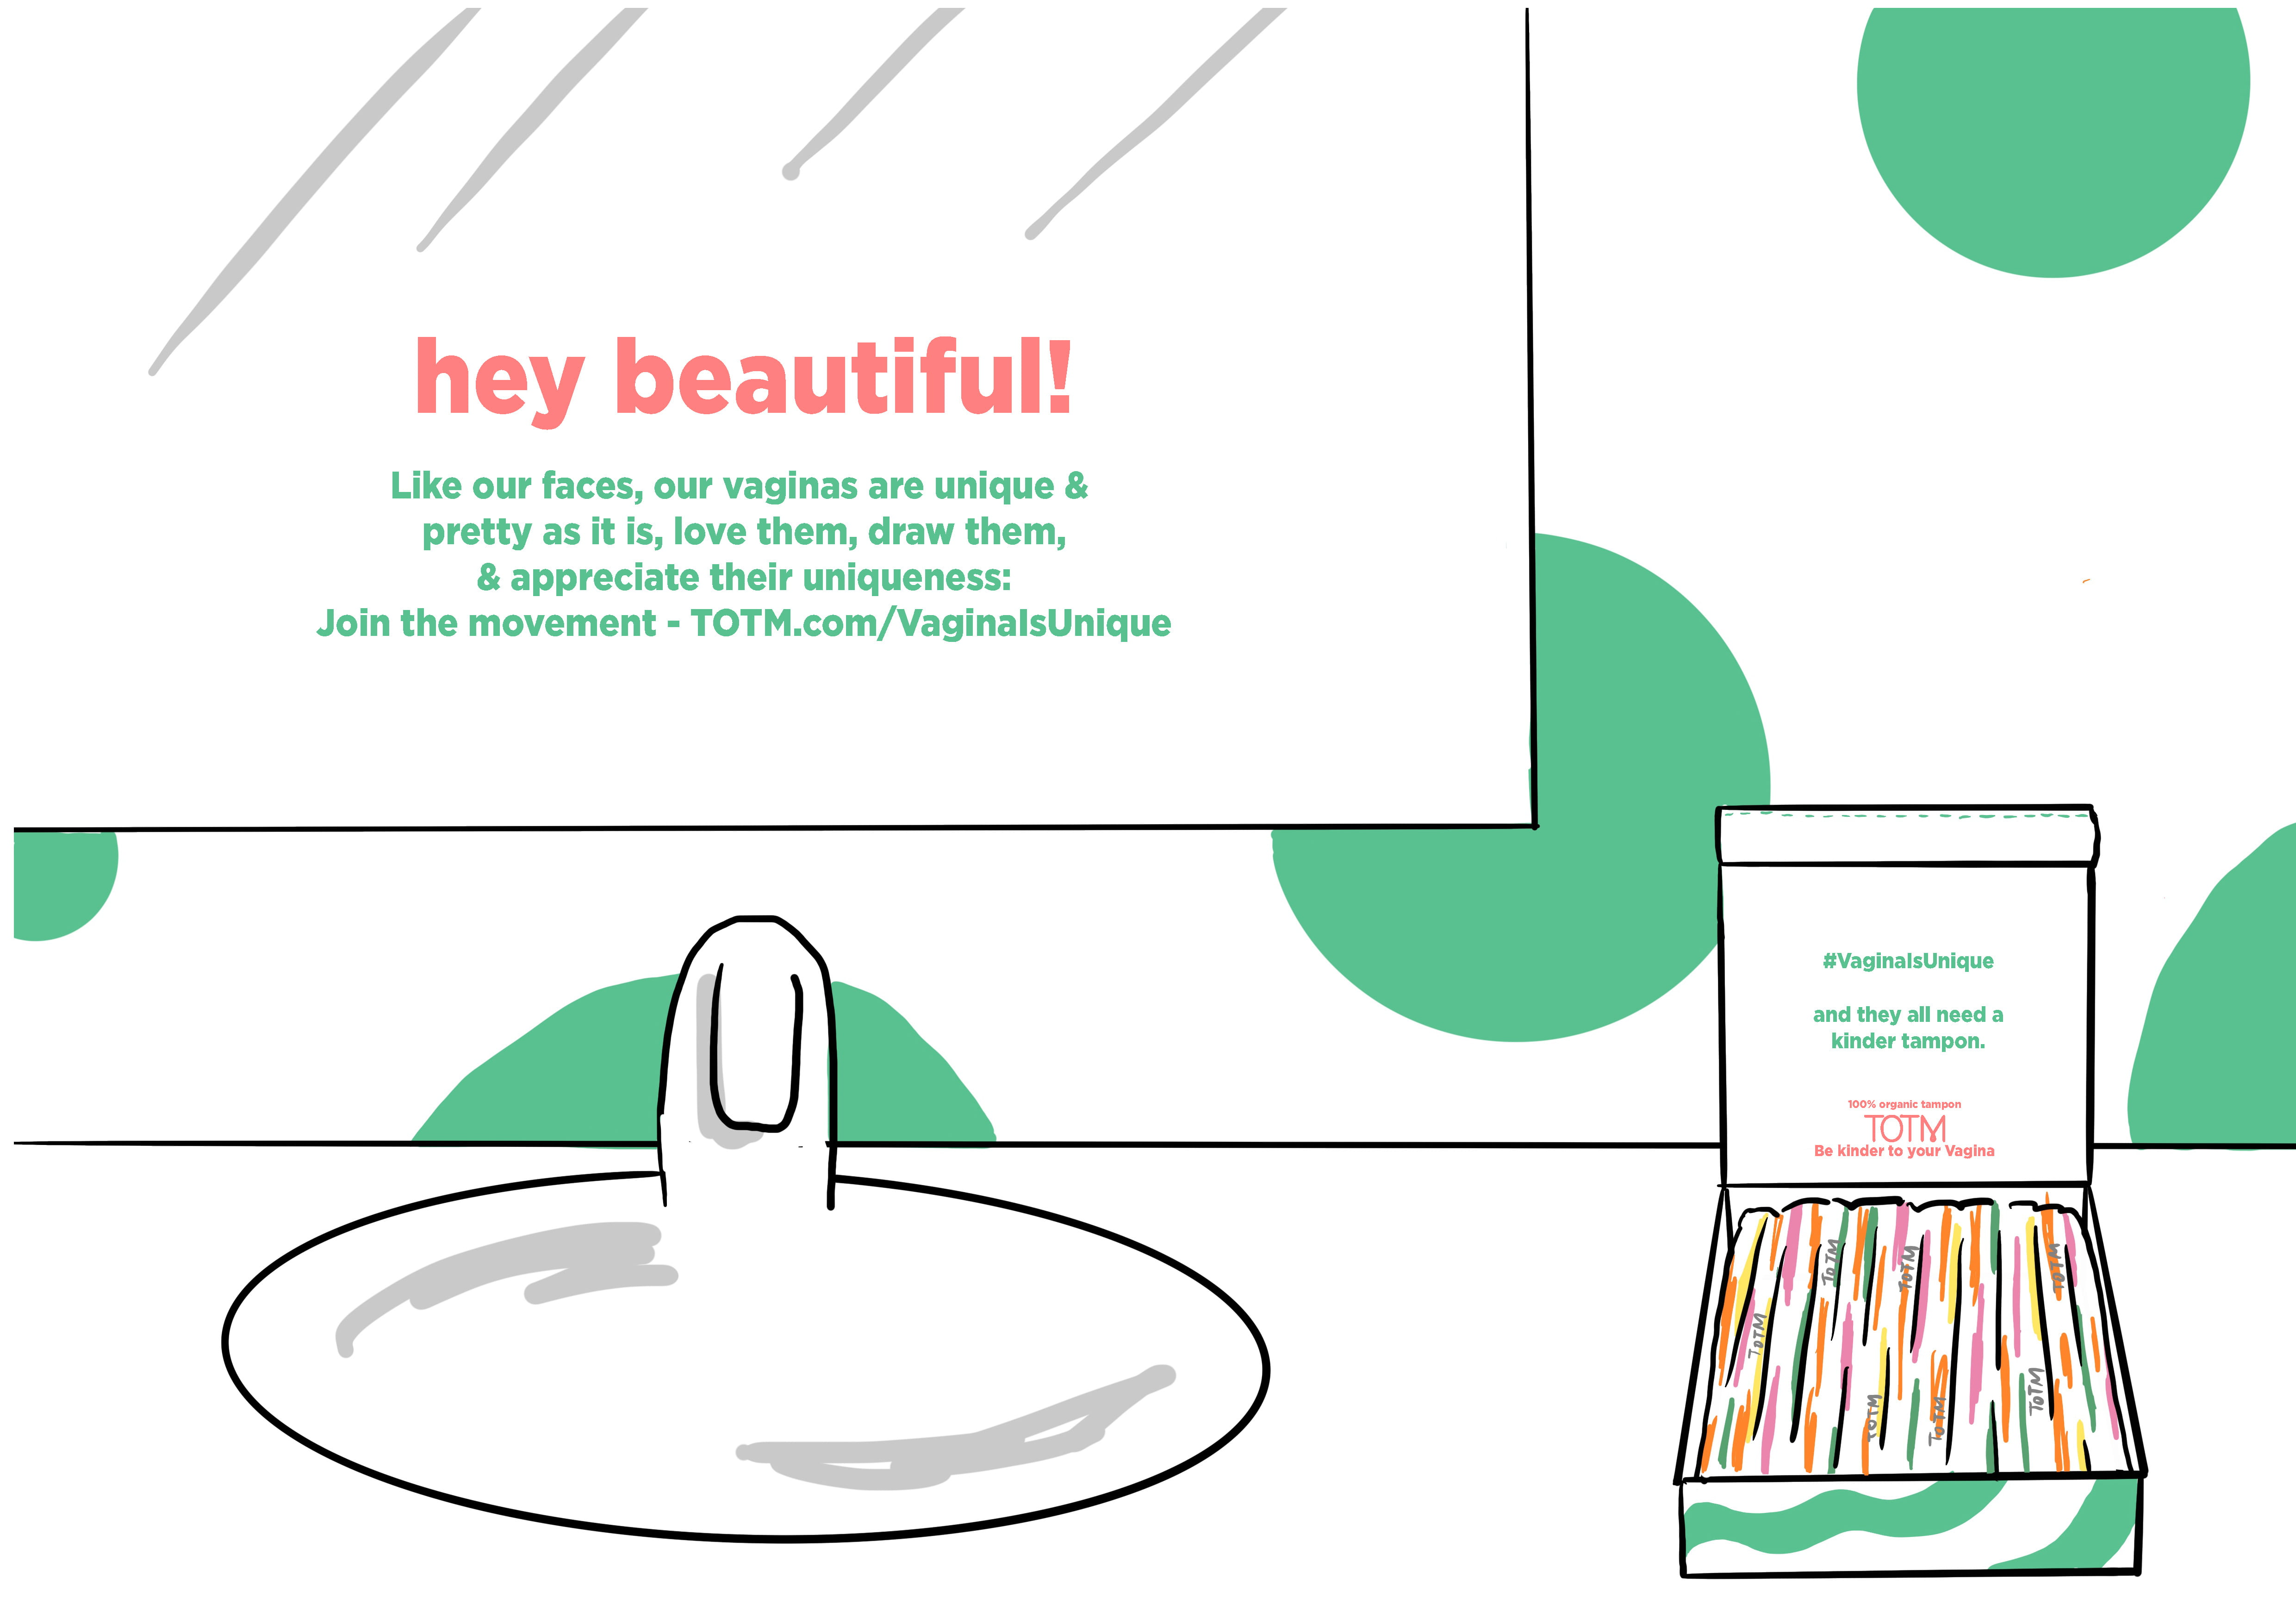 Illustration of a mirror with product slogan and box of tampons.